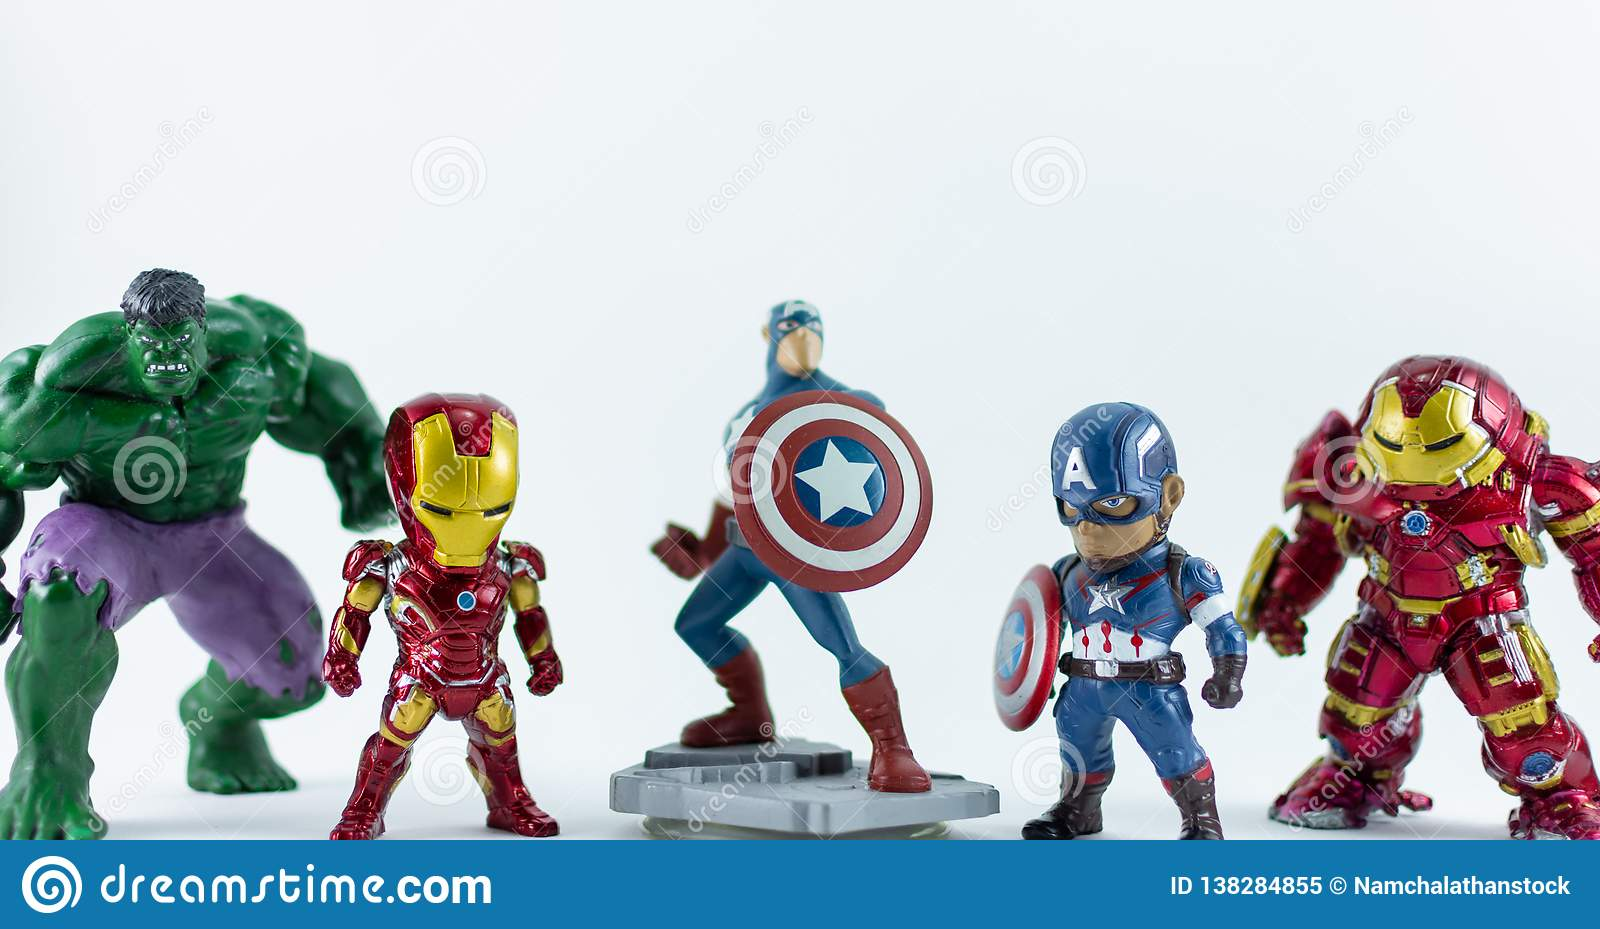 3 491 Marvel Background Photos Free Royalty Free Stock Photos From Dreamstime